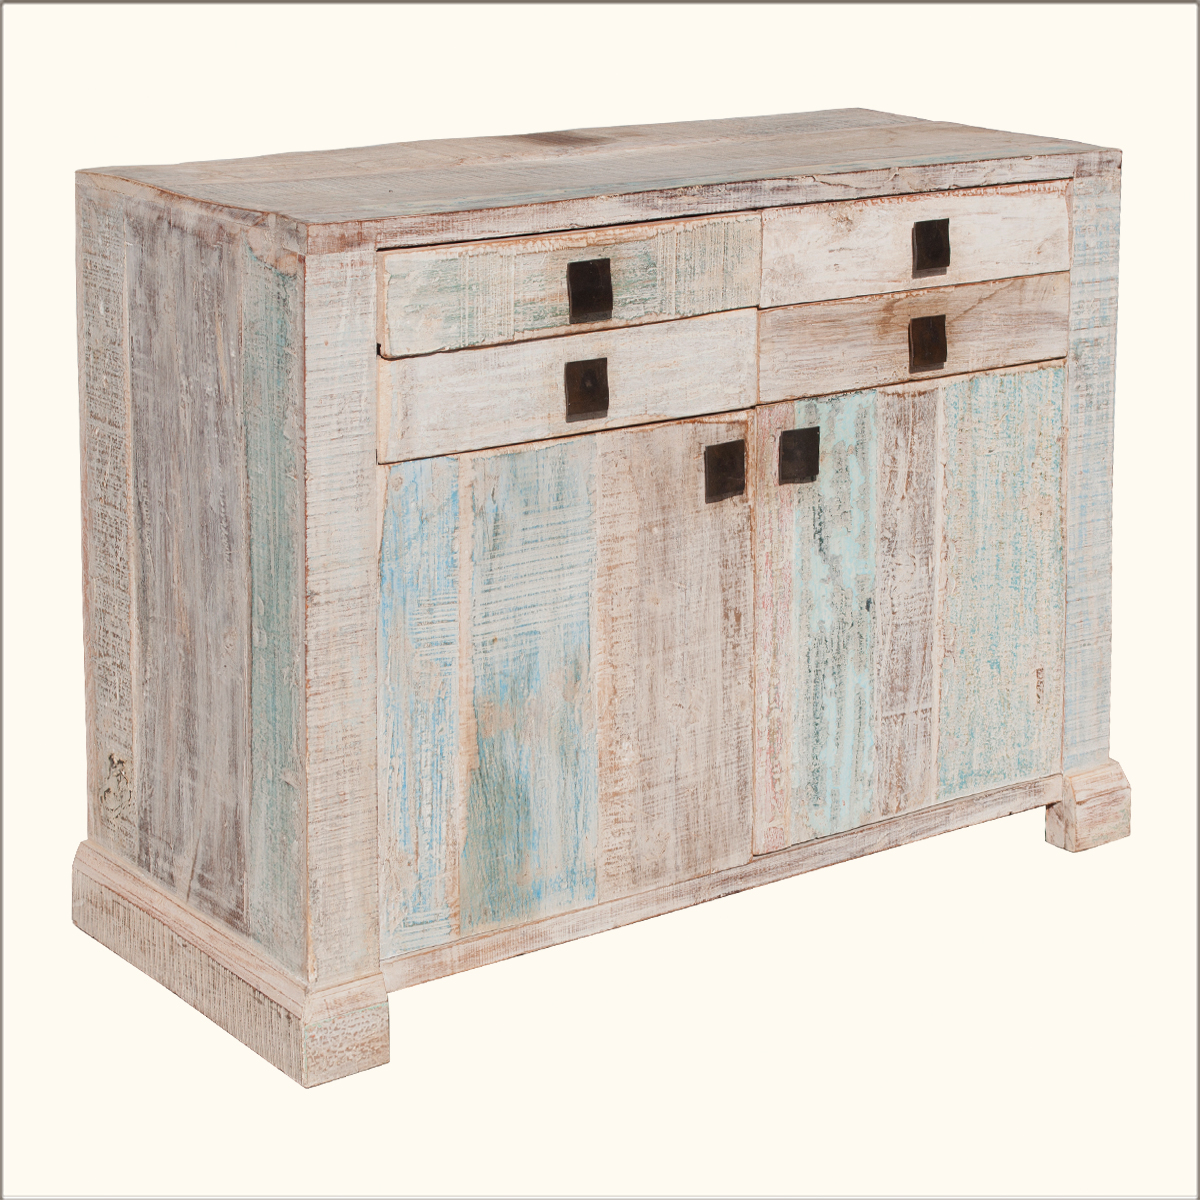 Rustic Old Reclaimed Wood Distressed Storage Cabinet